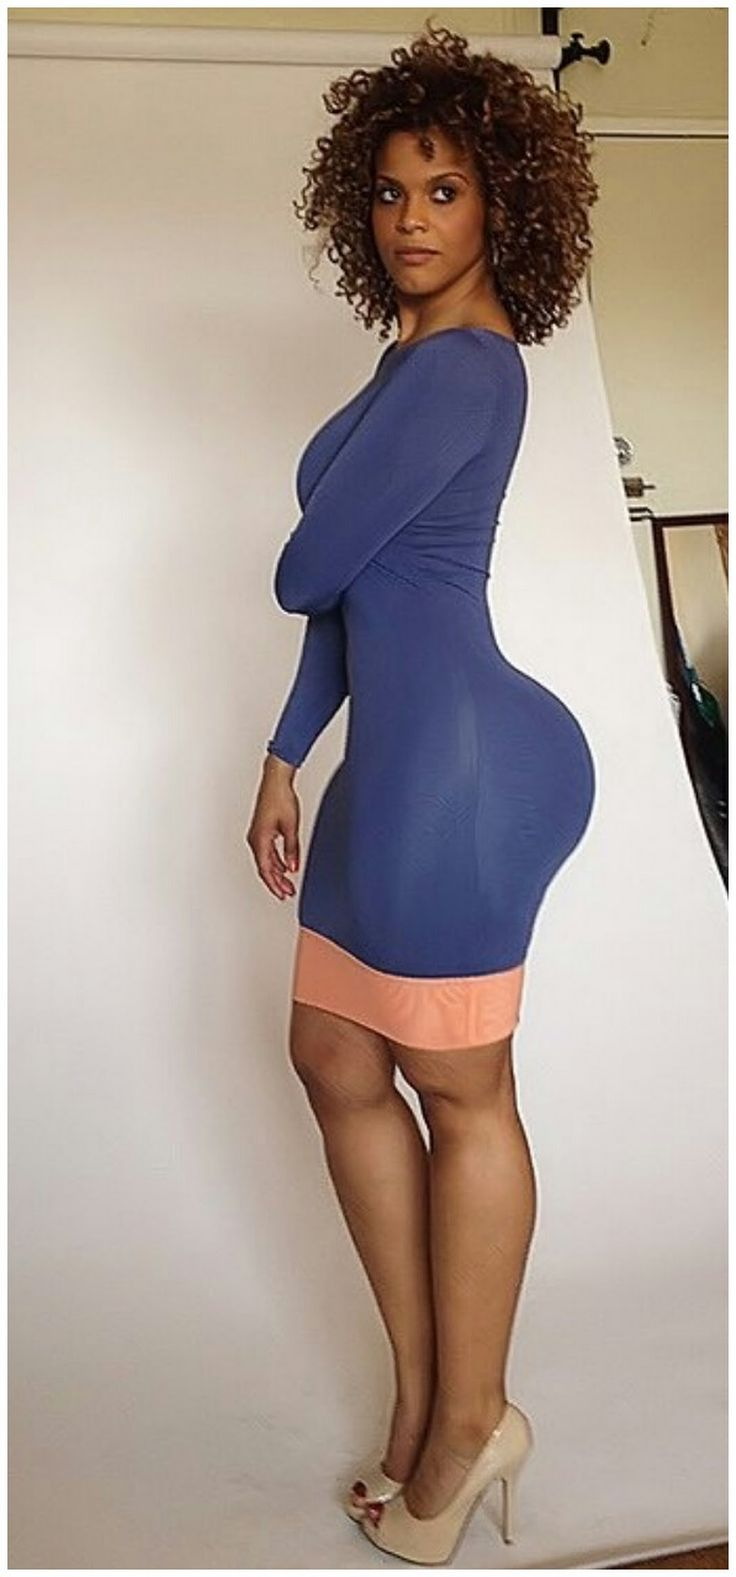 Sexy Ass Black Women 24